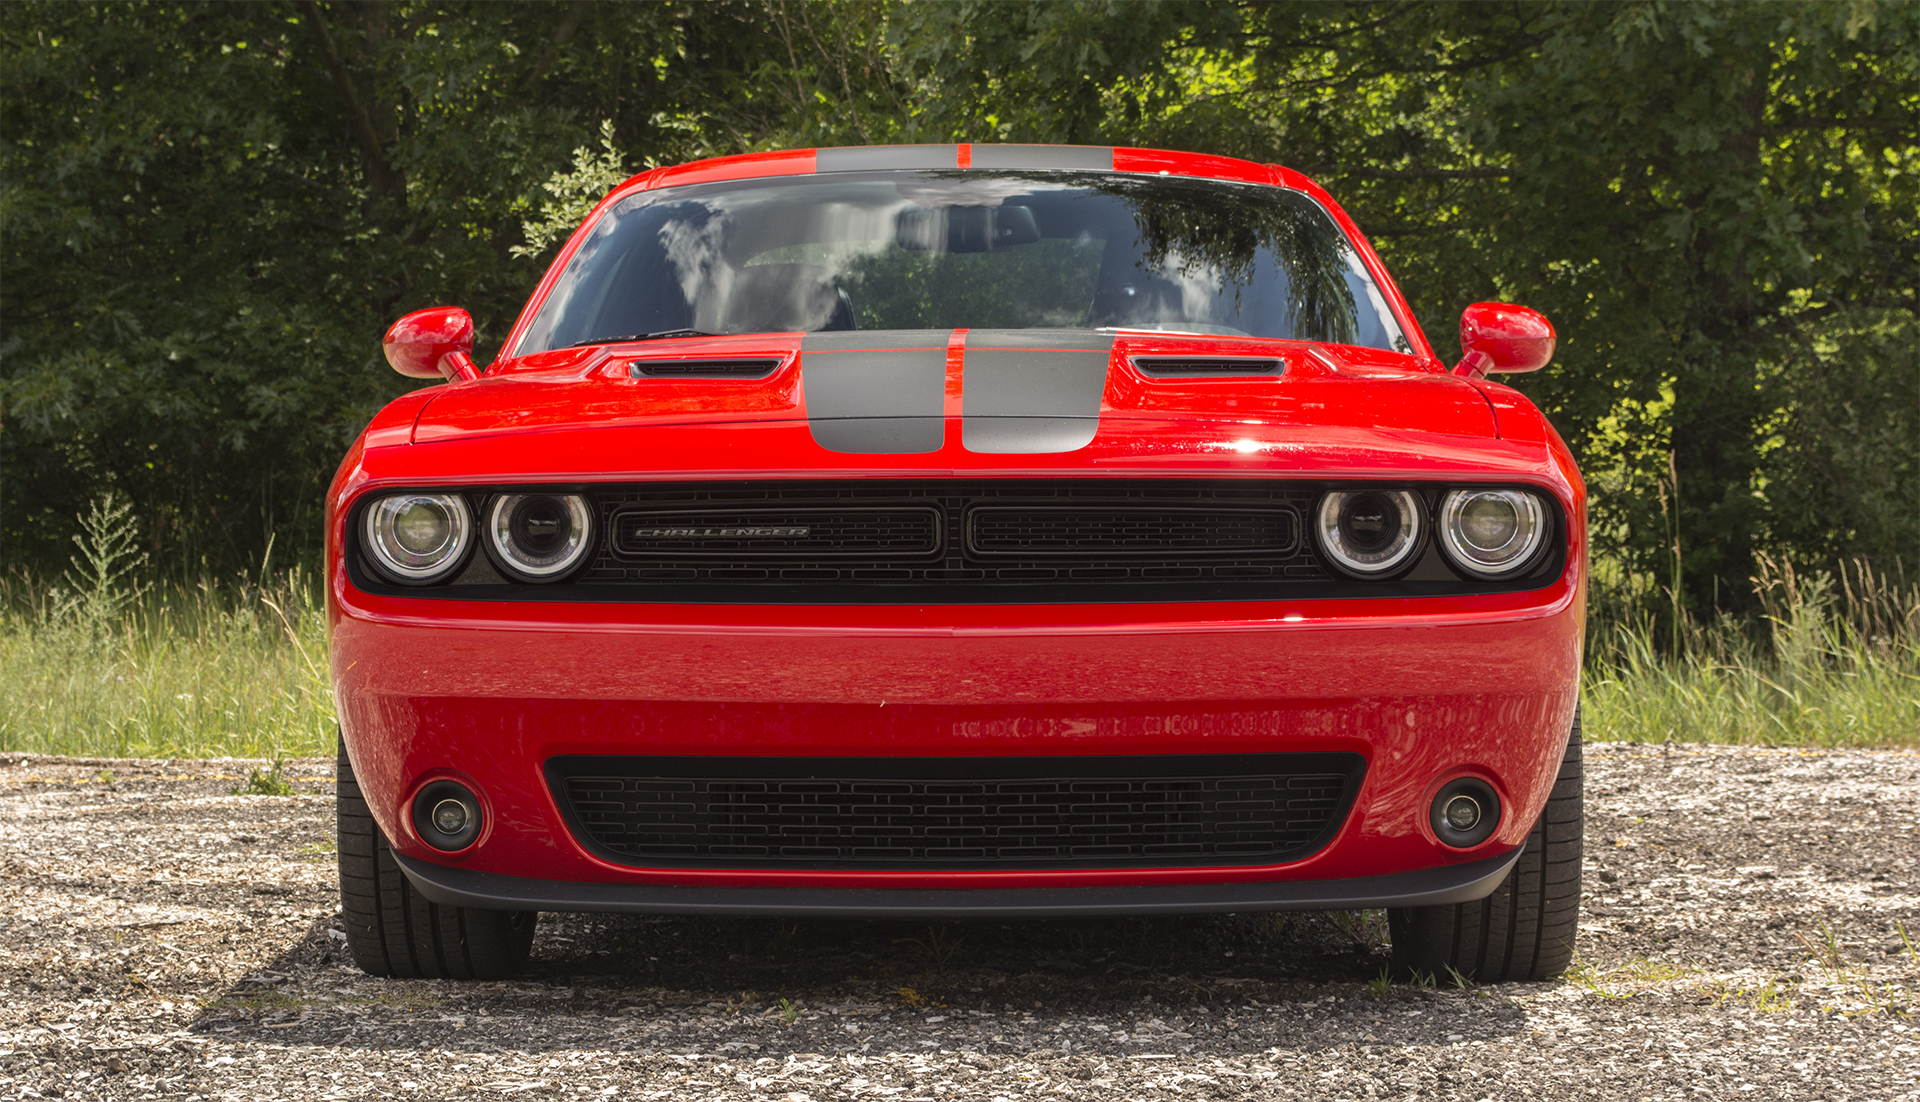 2016 dodge challenger. Black Bedroom Furniture Sets. Home Design Ideas